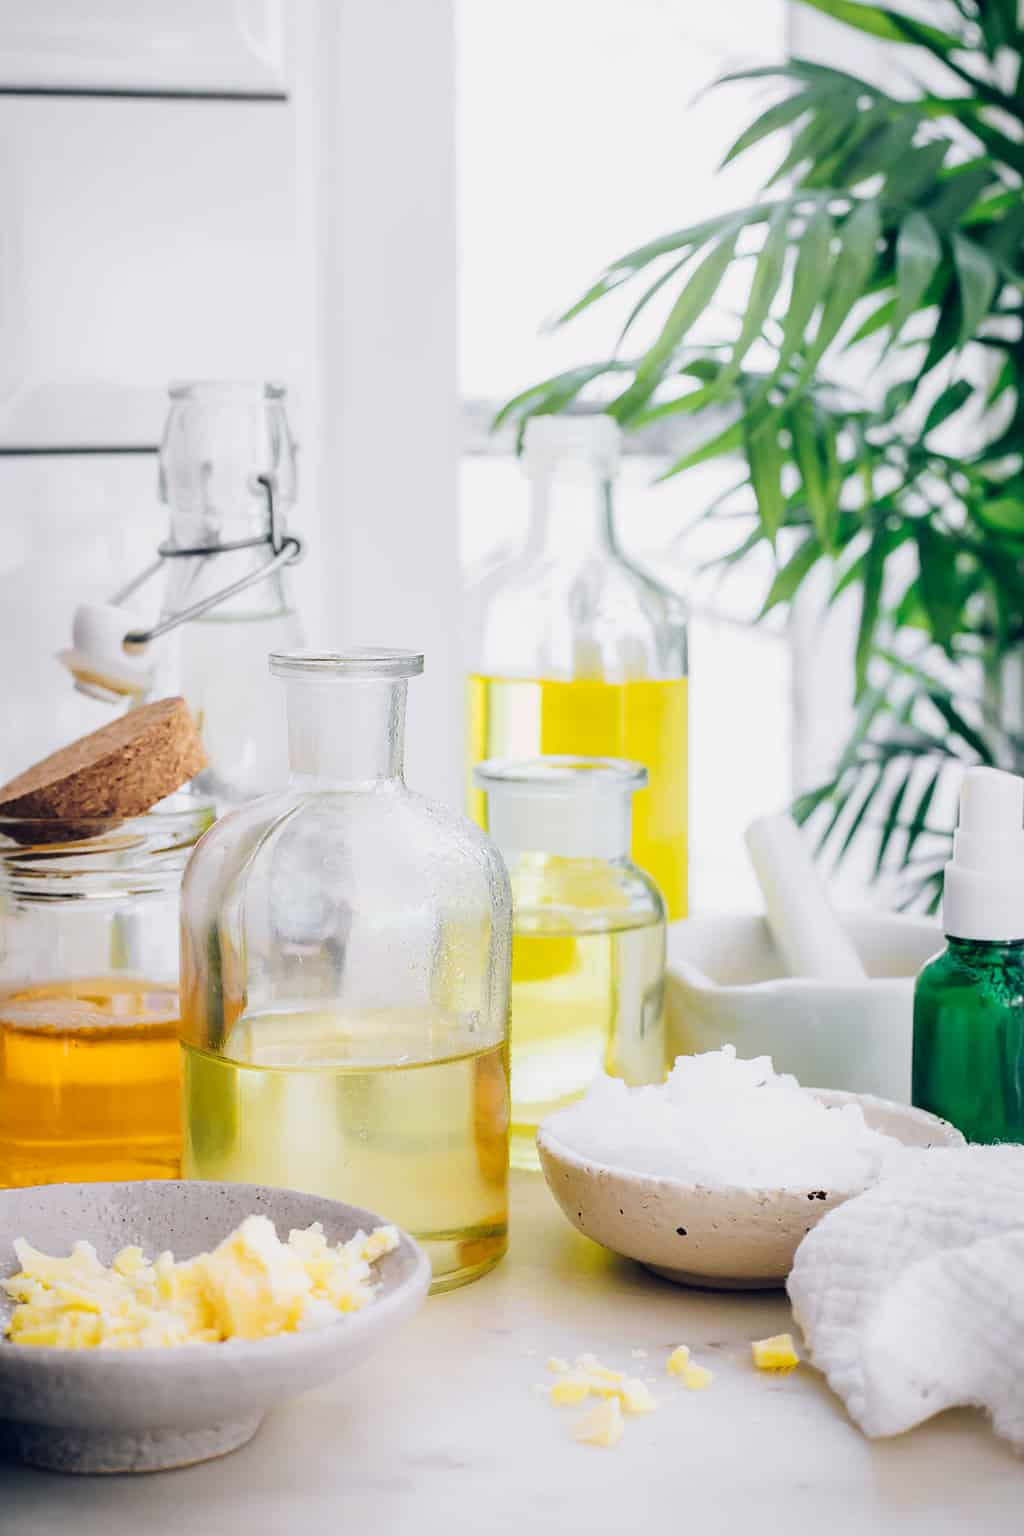 10 Natural Moisturizers For Your Face